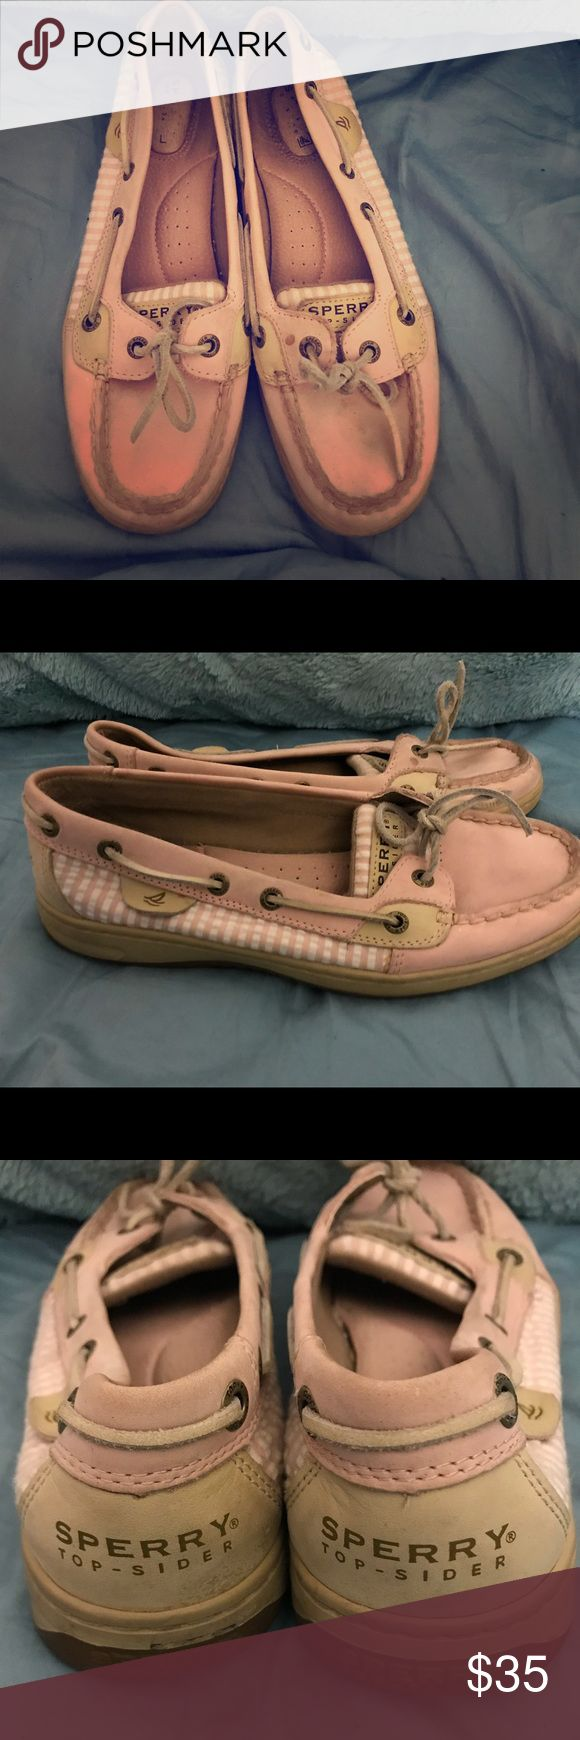 Pink Sperry's Pink Sperry's. Have some scuff marks as seen in the pictures but still in good condition. Make me an offer! Sperry Top-Sider Shoes